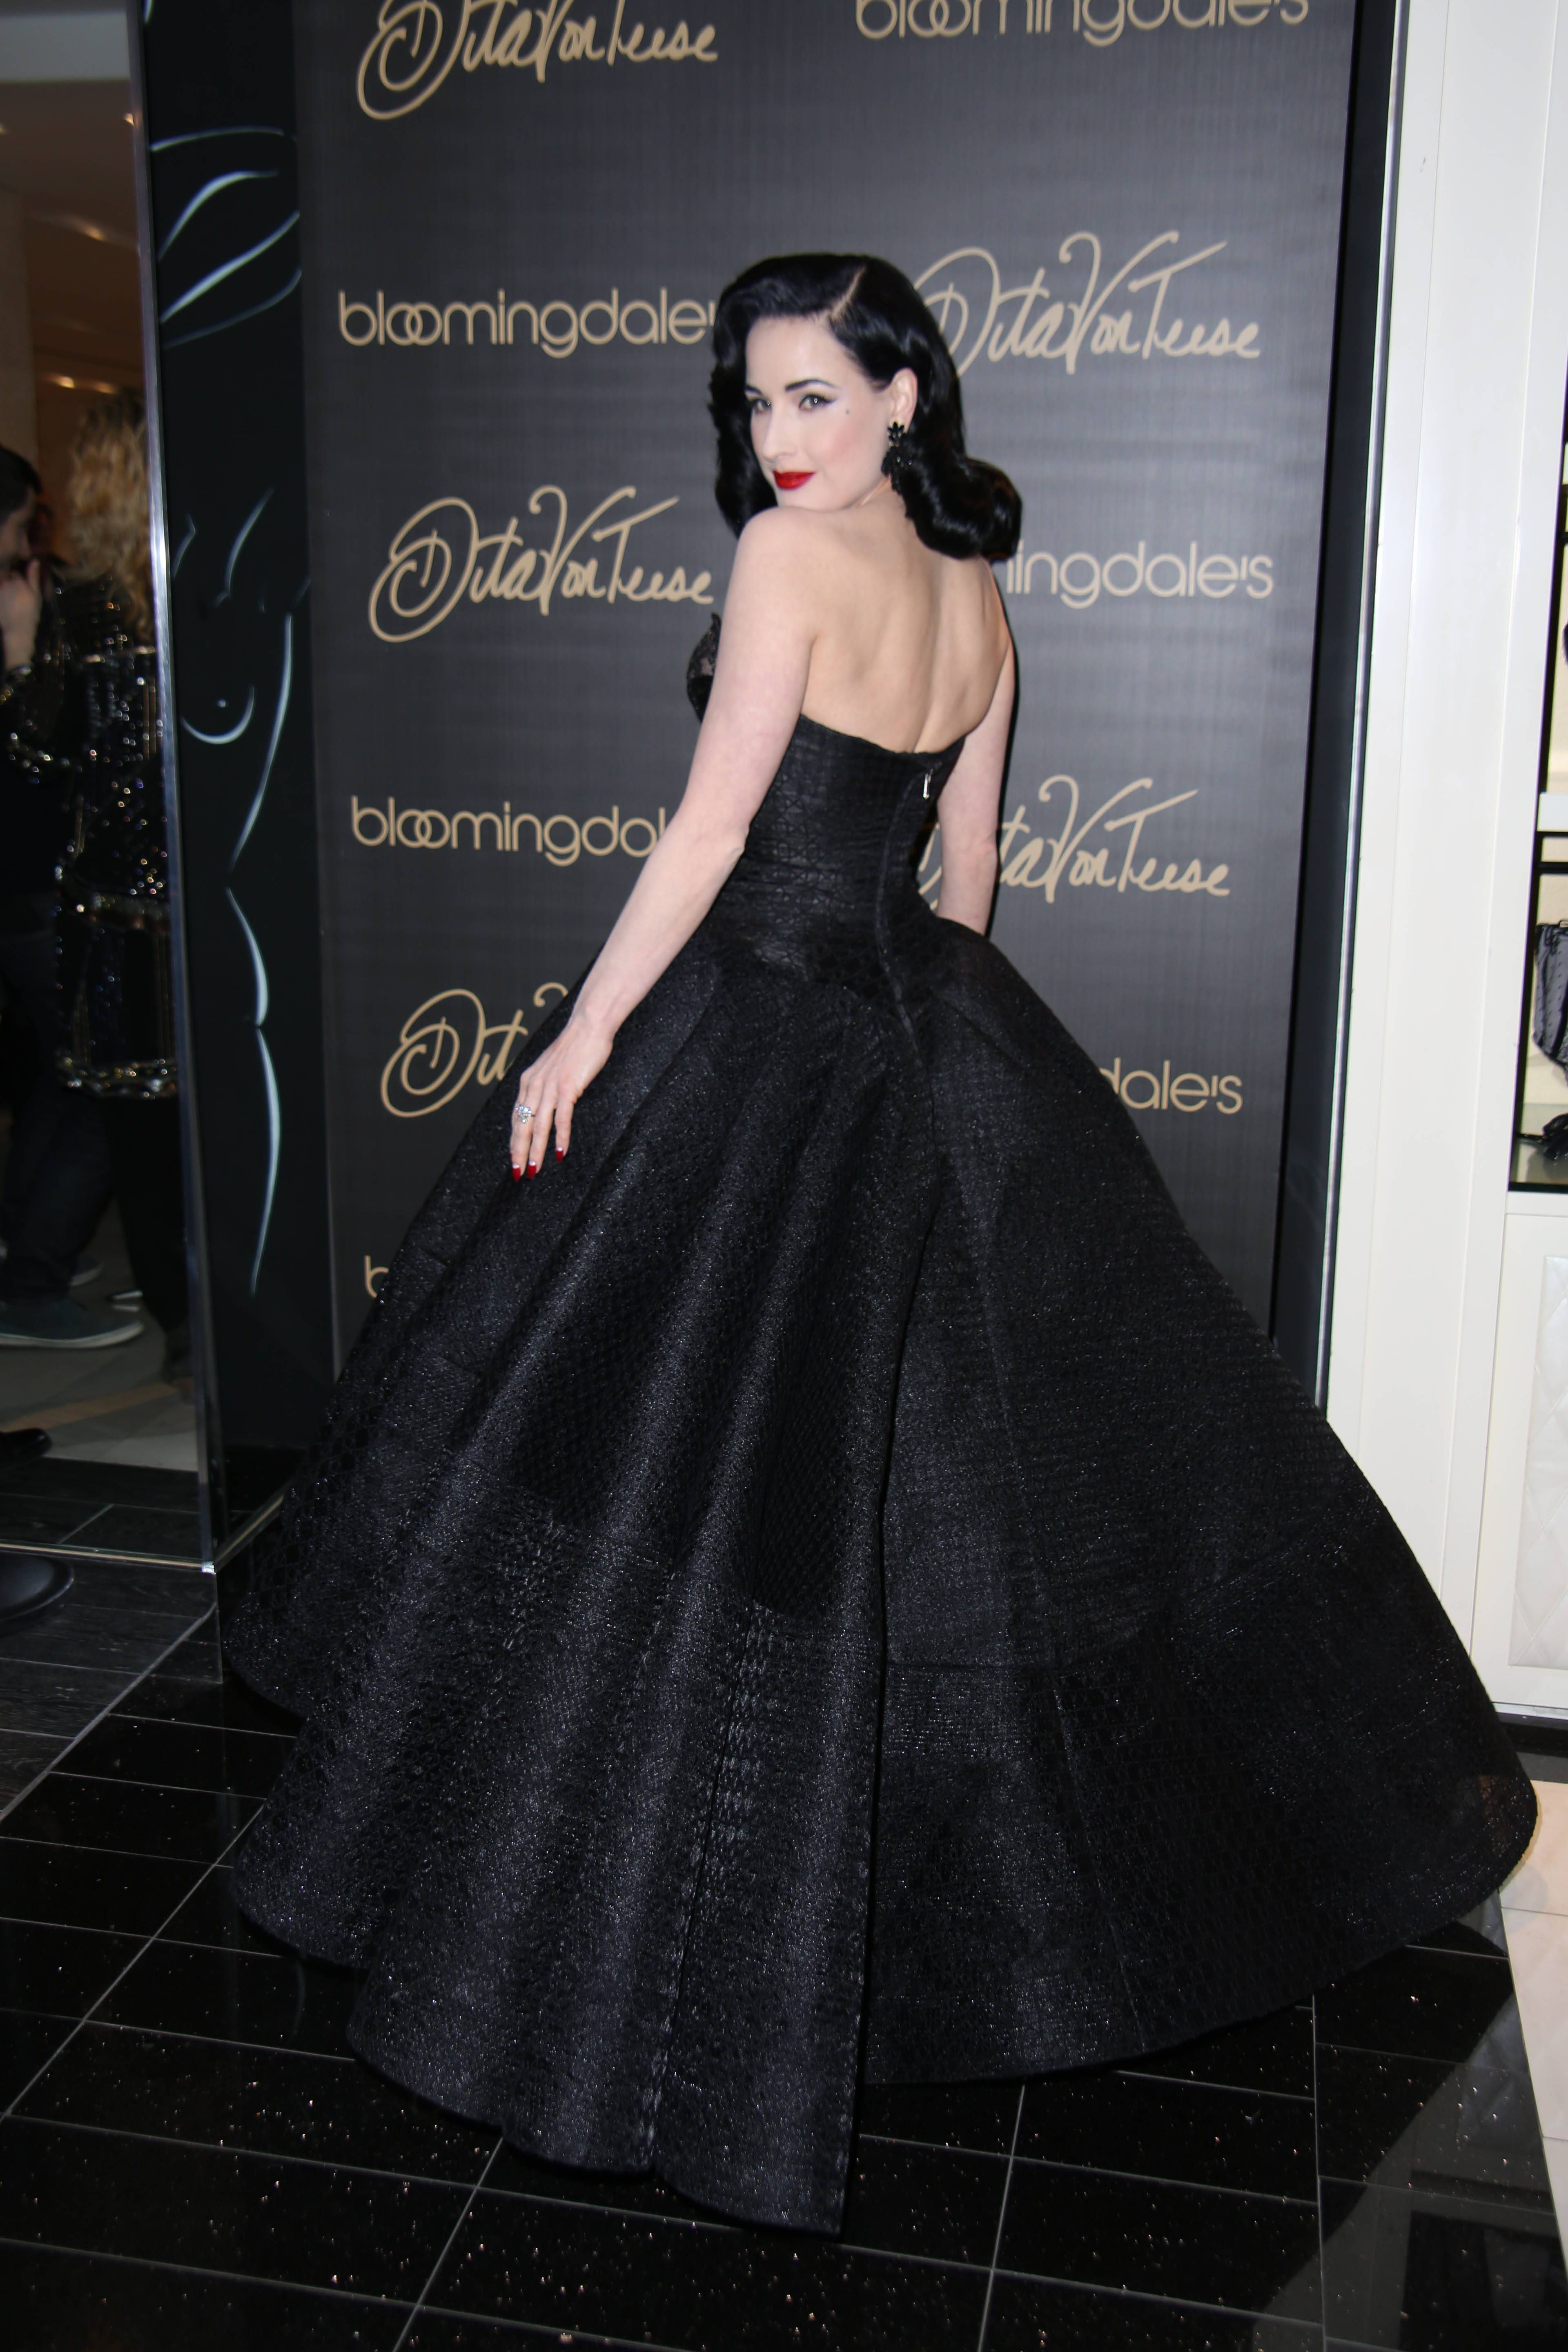 61710610e8b Dita Von Teese attending her Dita Von Teese Lingerie Collection Launch held  at Bloomingdale s 59th Street Store on March 20